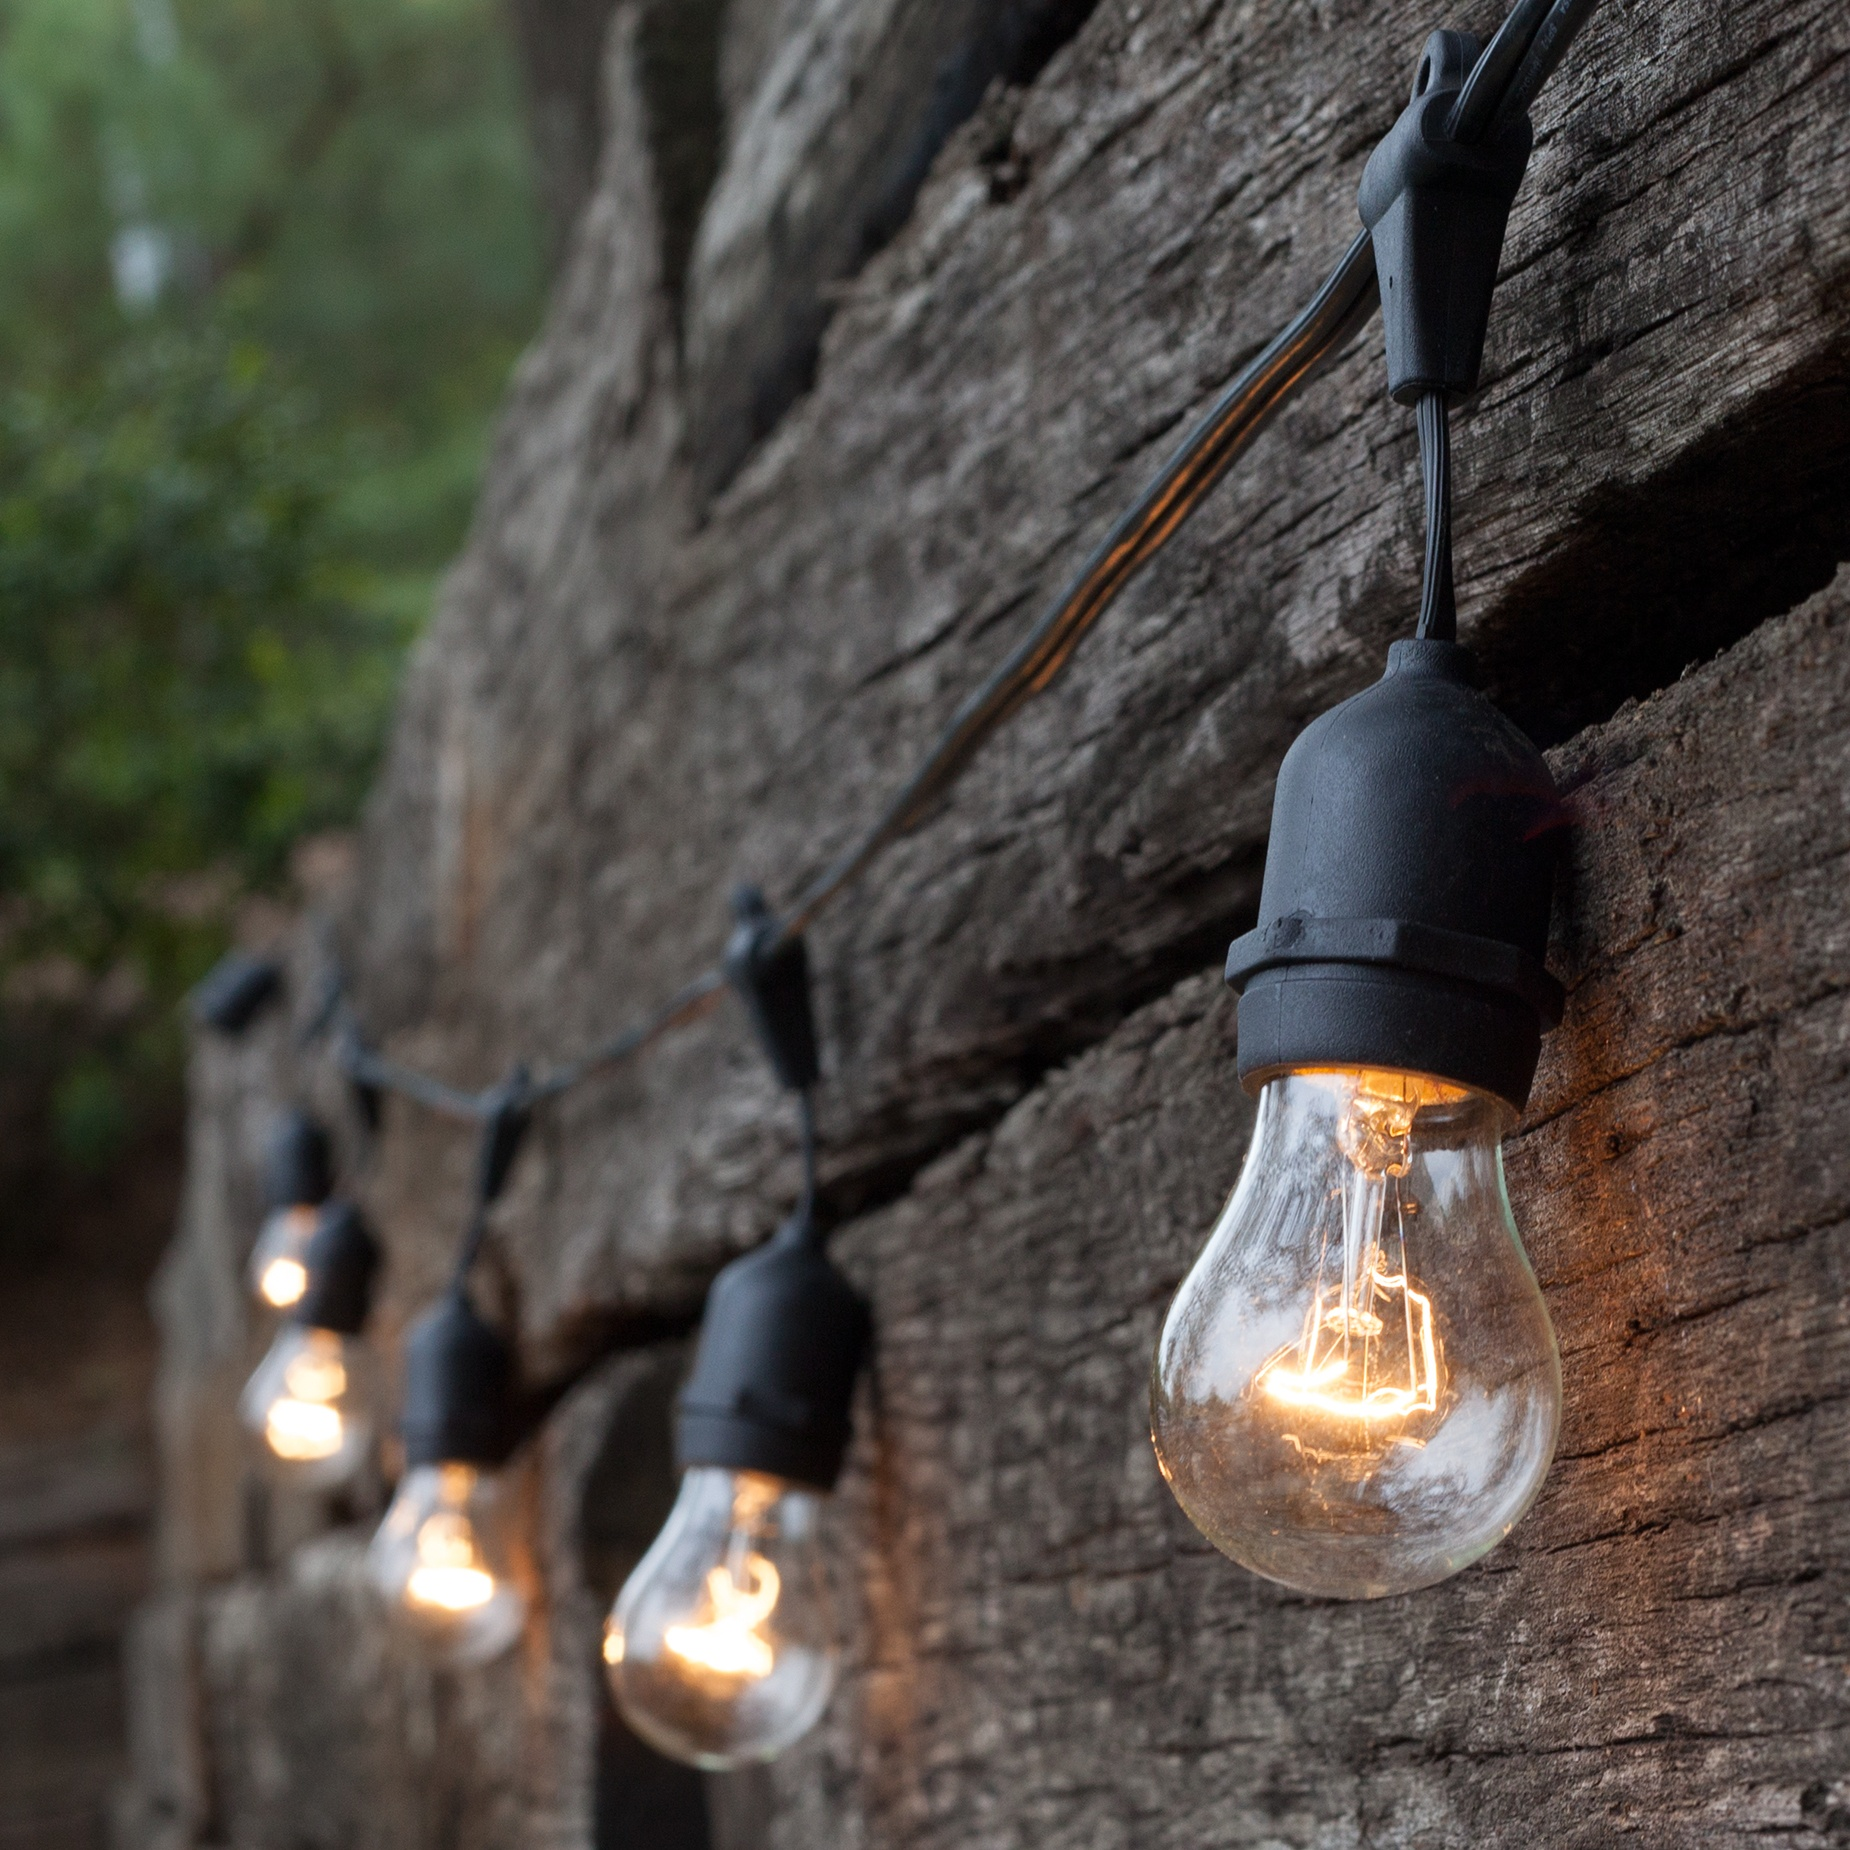 Outdoor String Lights Large Bulbs : Patio Lights - Commercial Clear Patio String Lights, 24 A15 E26 Bulbs Black Wire